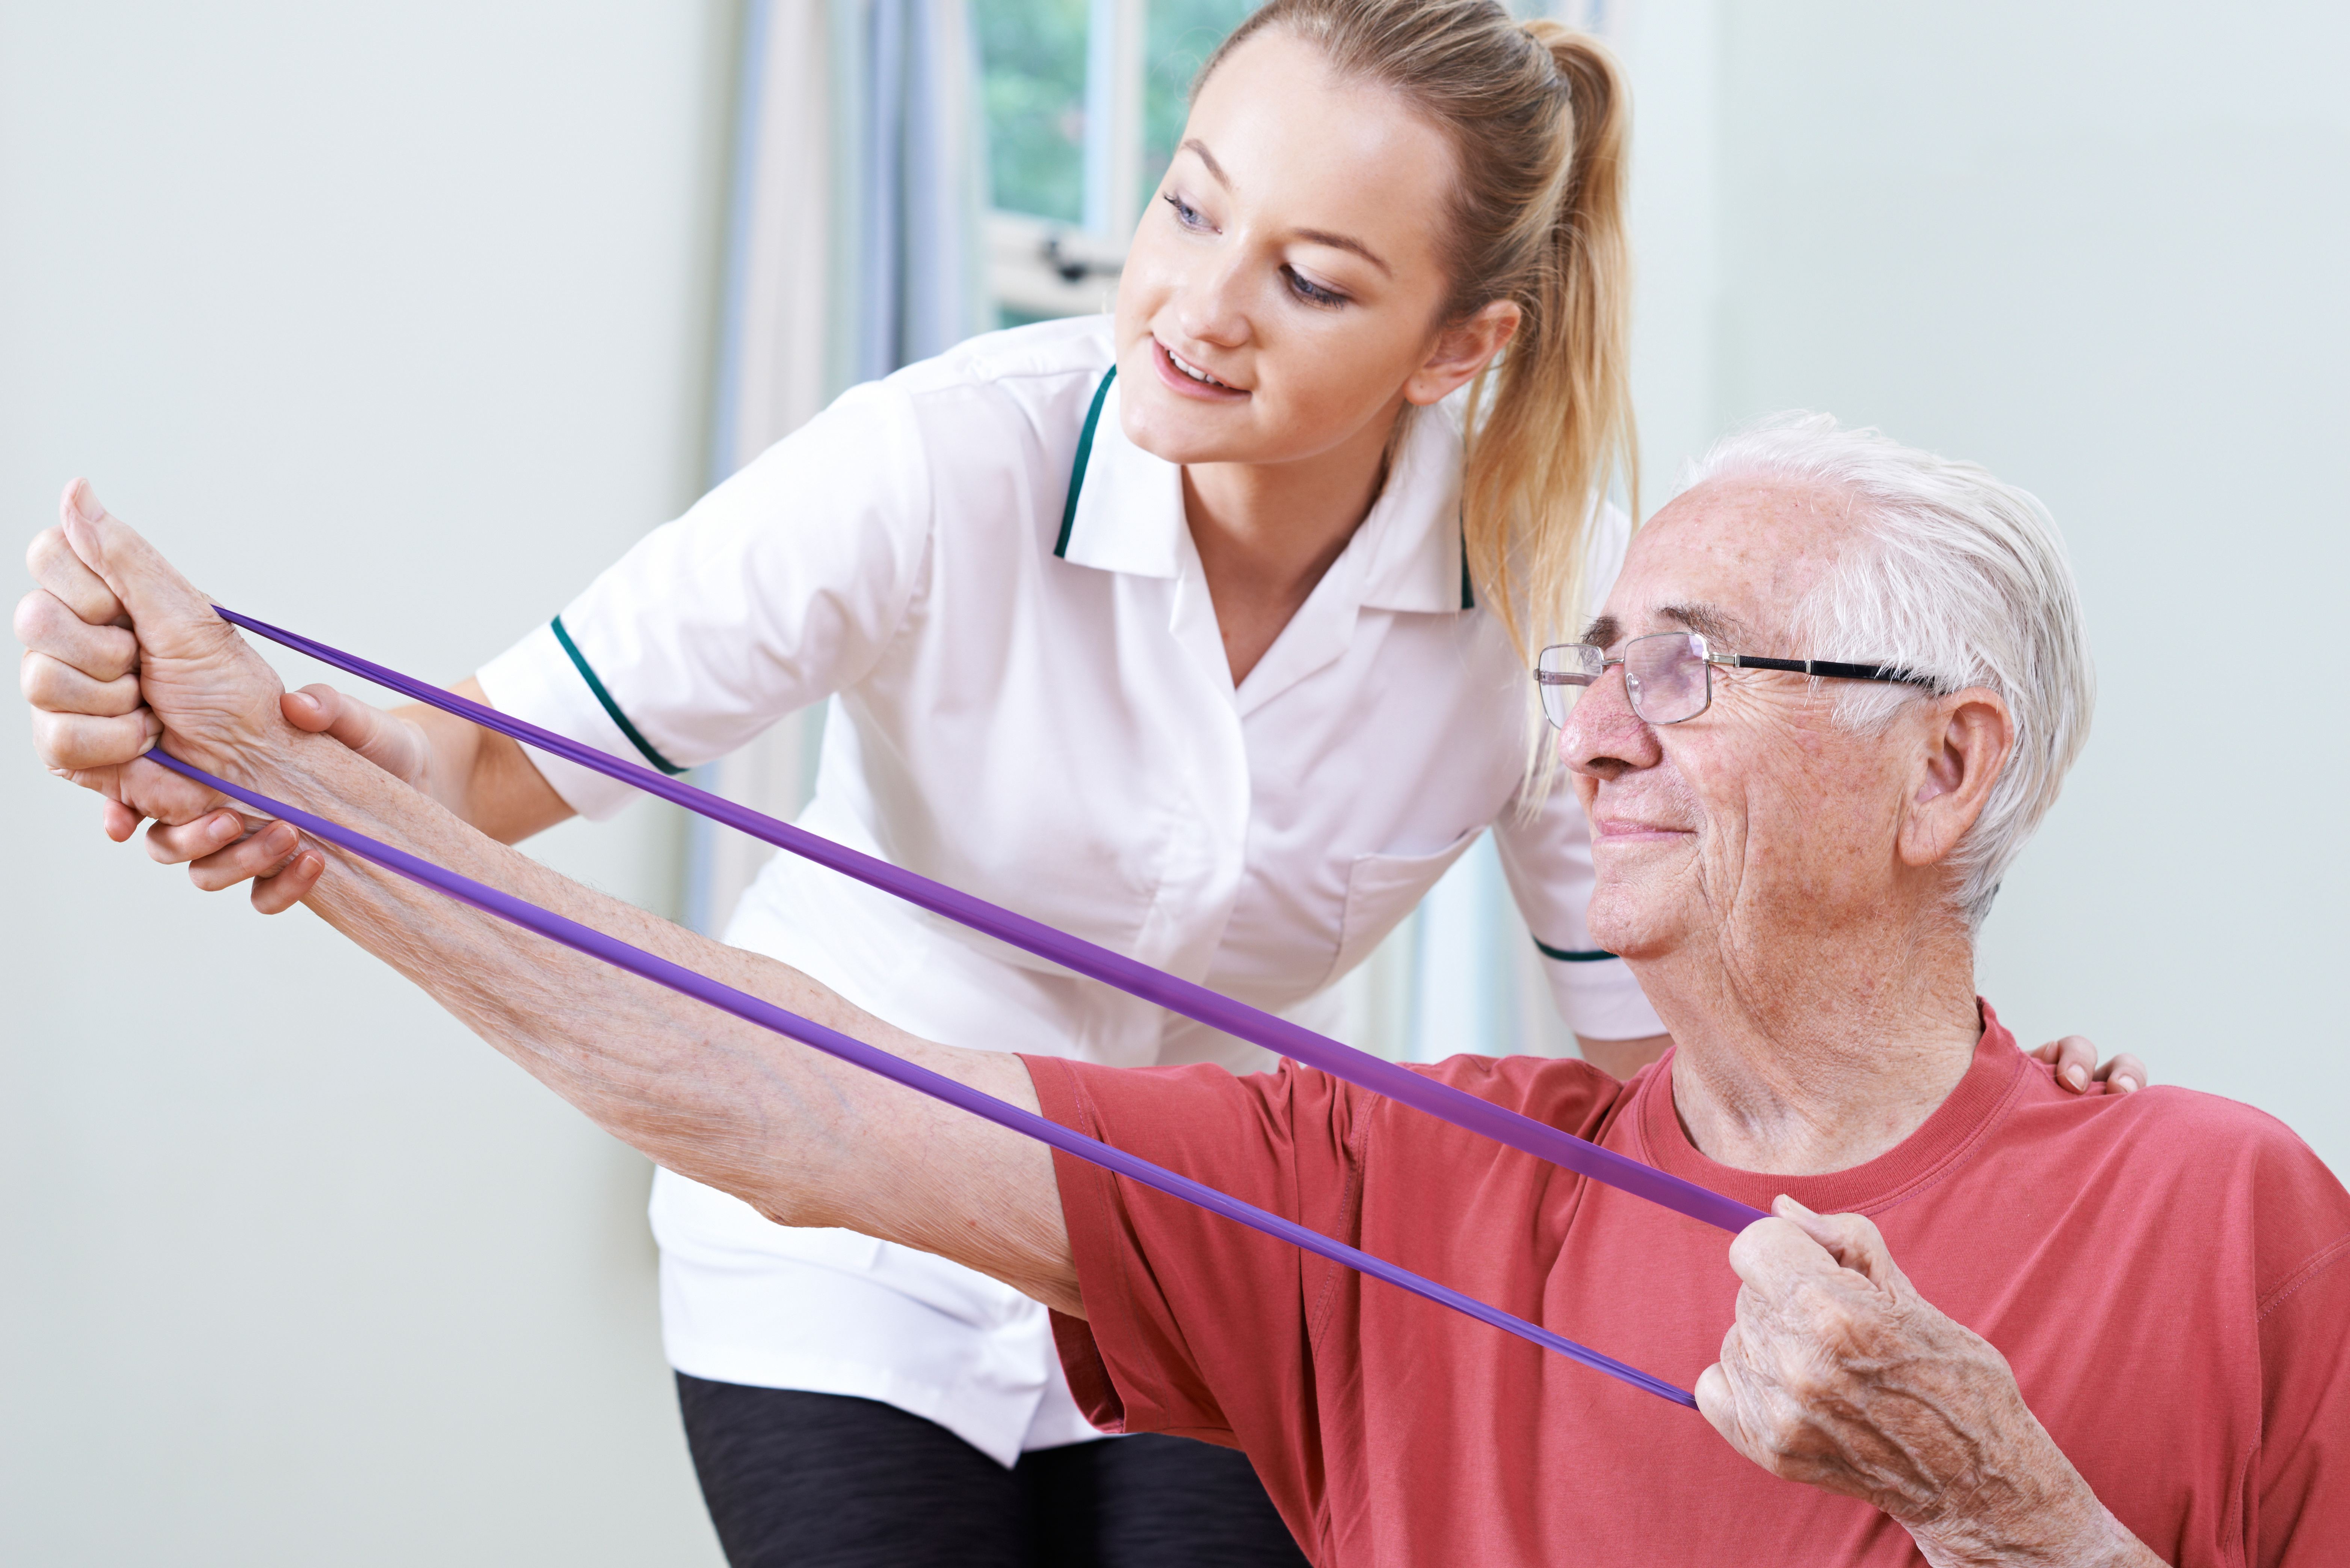 Article on physical therapy - Mobile Physical Therapy Assistance Care